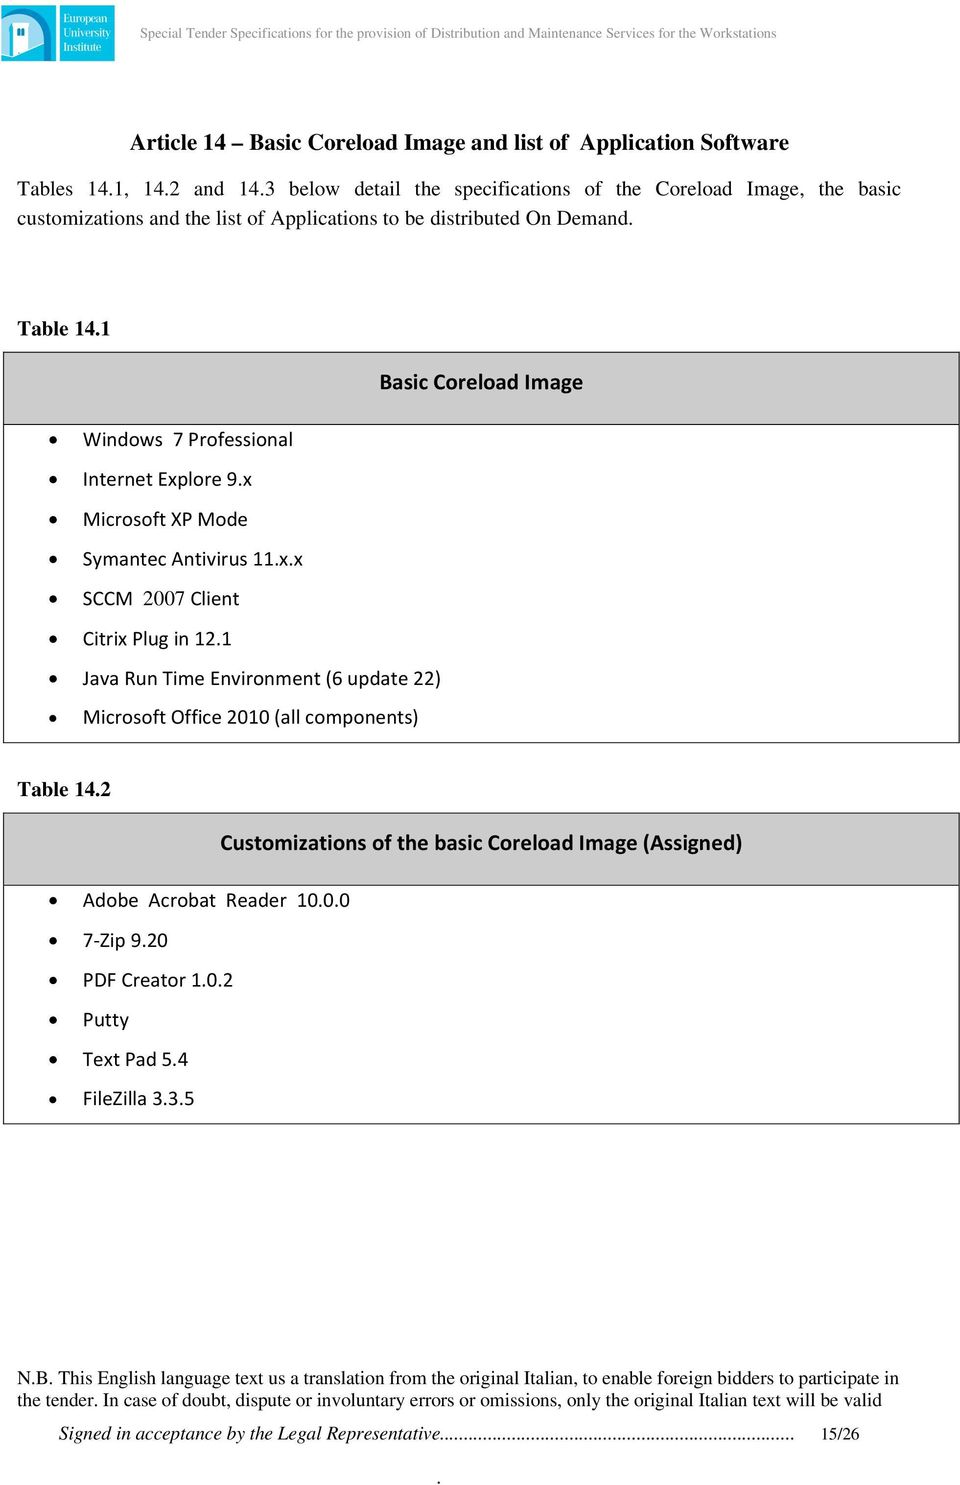 Java Run Time Environment (6 update 22) Microsoft Office 2010 (all components) Table 142 Customizations of the basic Coreload Image (Assigned) Adobe Acrobat Reader 1000 7 Zip 920 PDF Creator 102